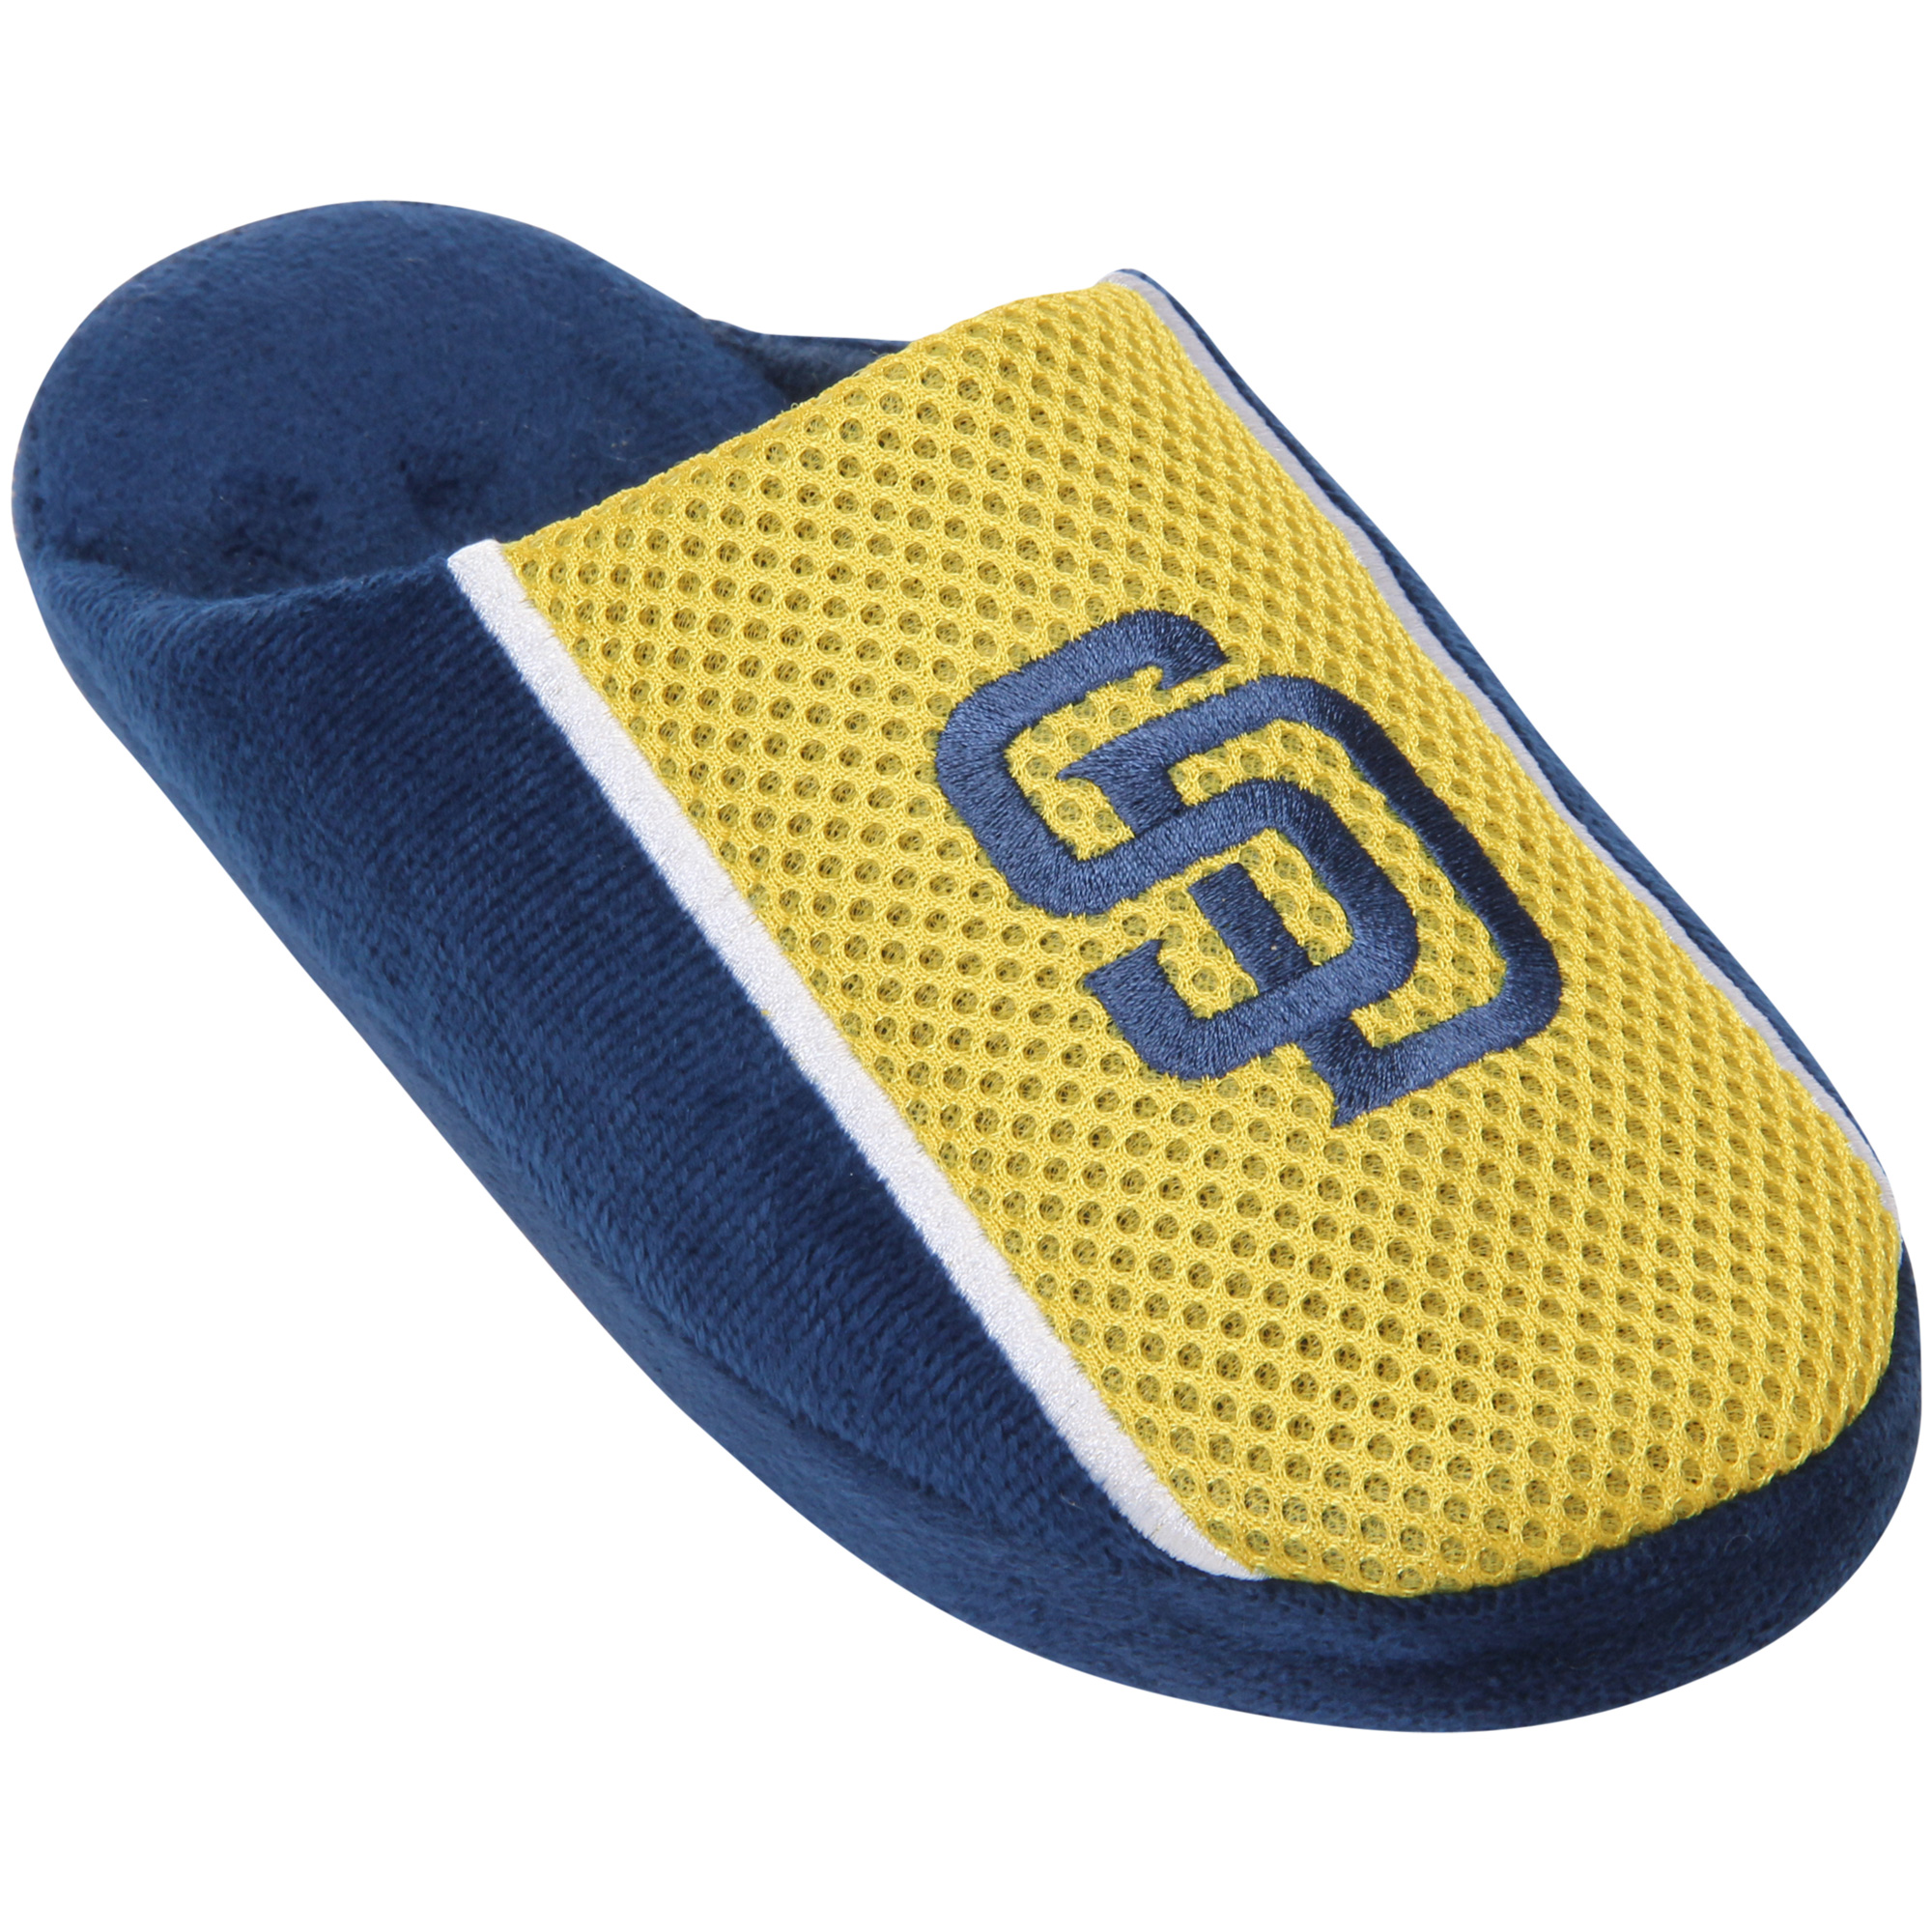 San Diego Padres Youth Jersey Slippers